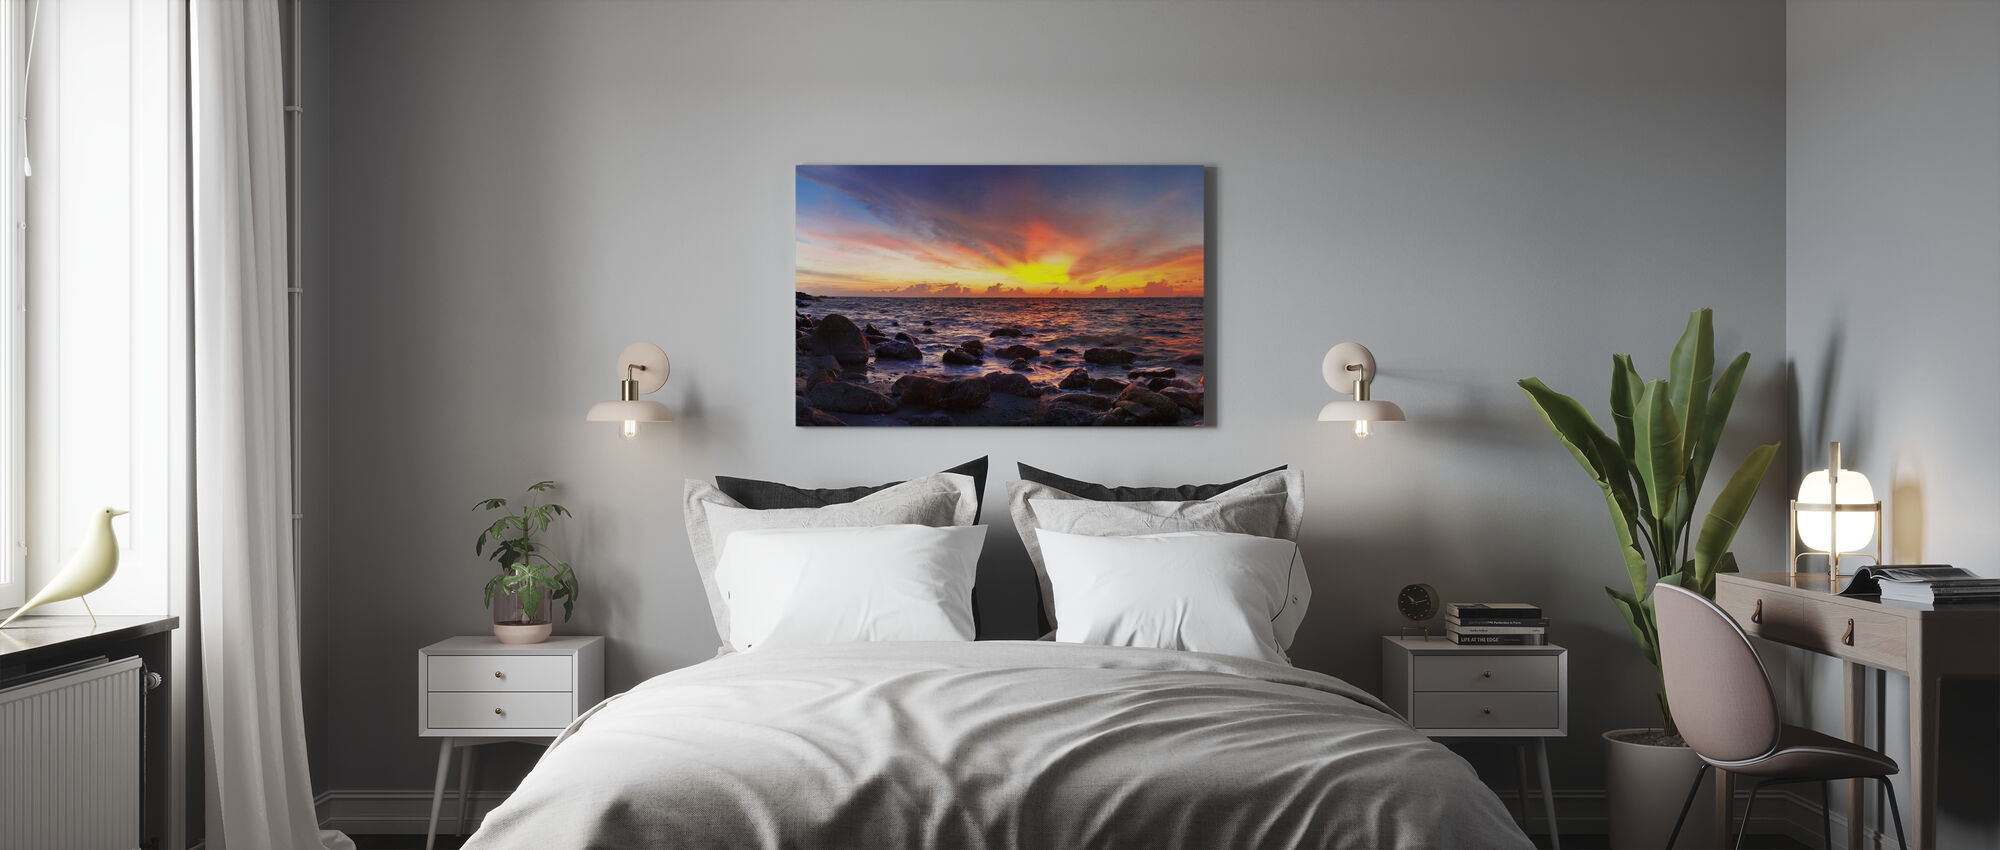 Wild Sunset - Canvas print - Bedroom